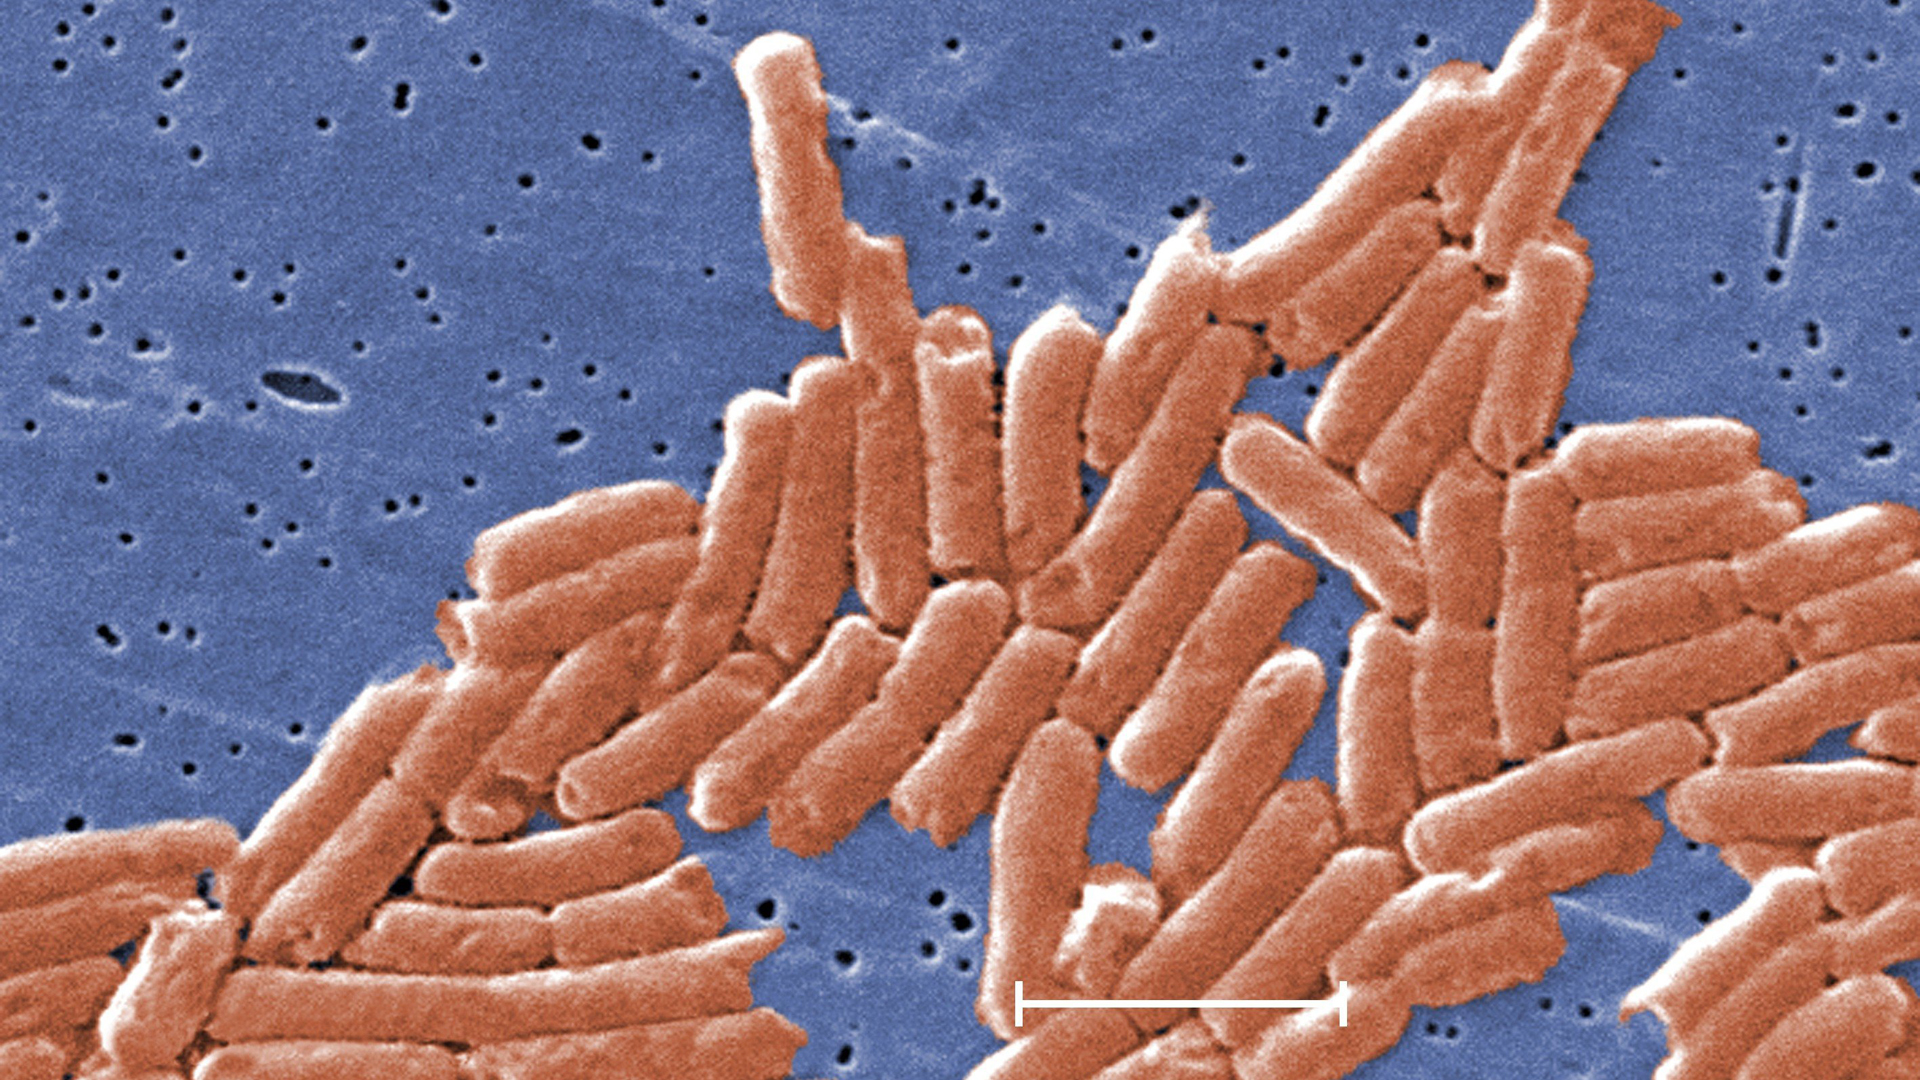 An image of salmonella distributed by the CDC.